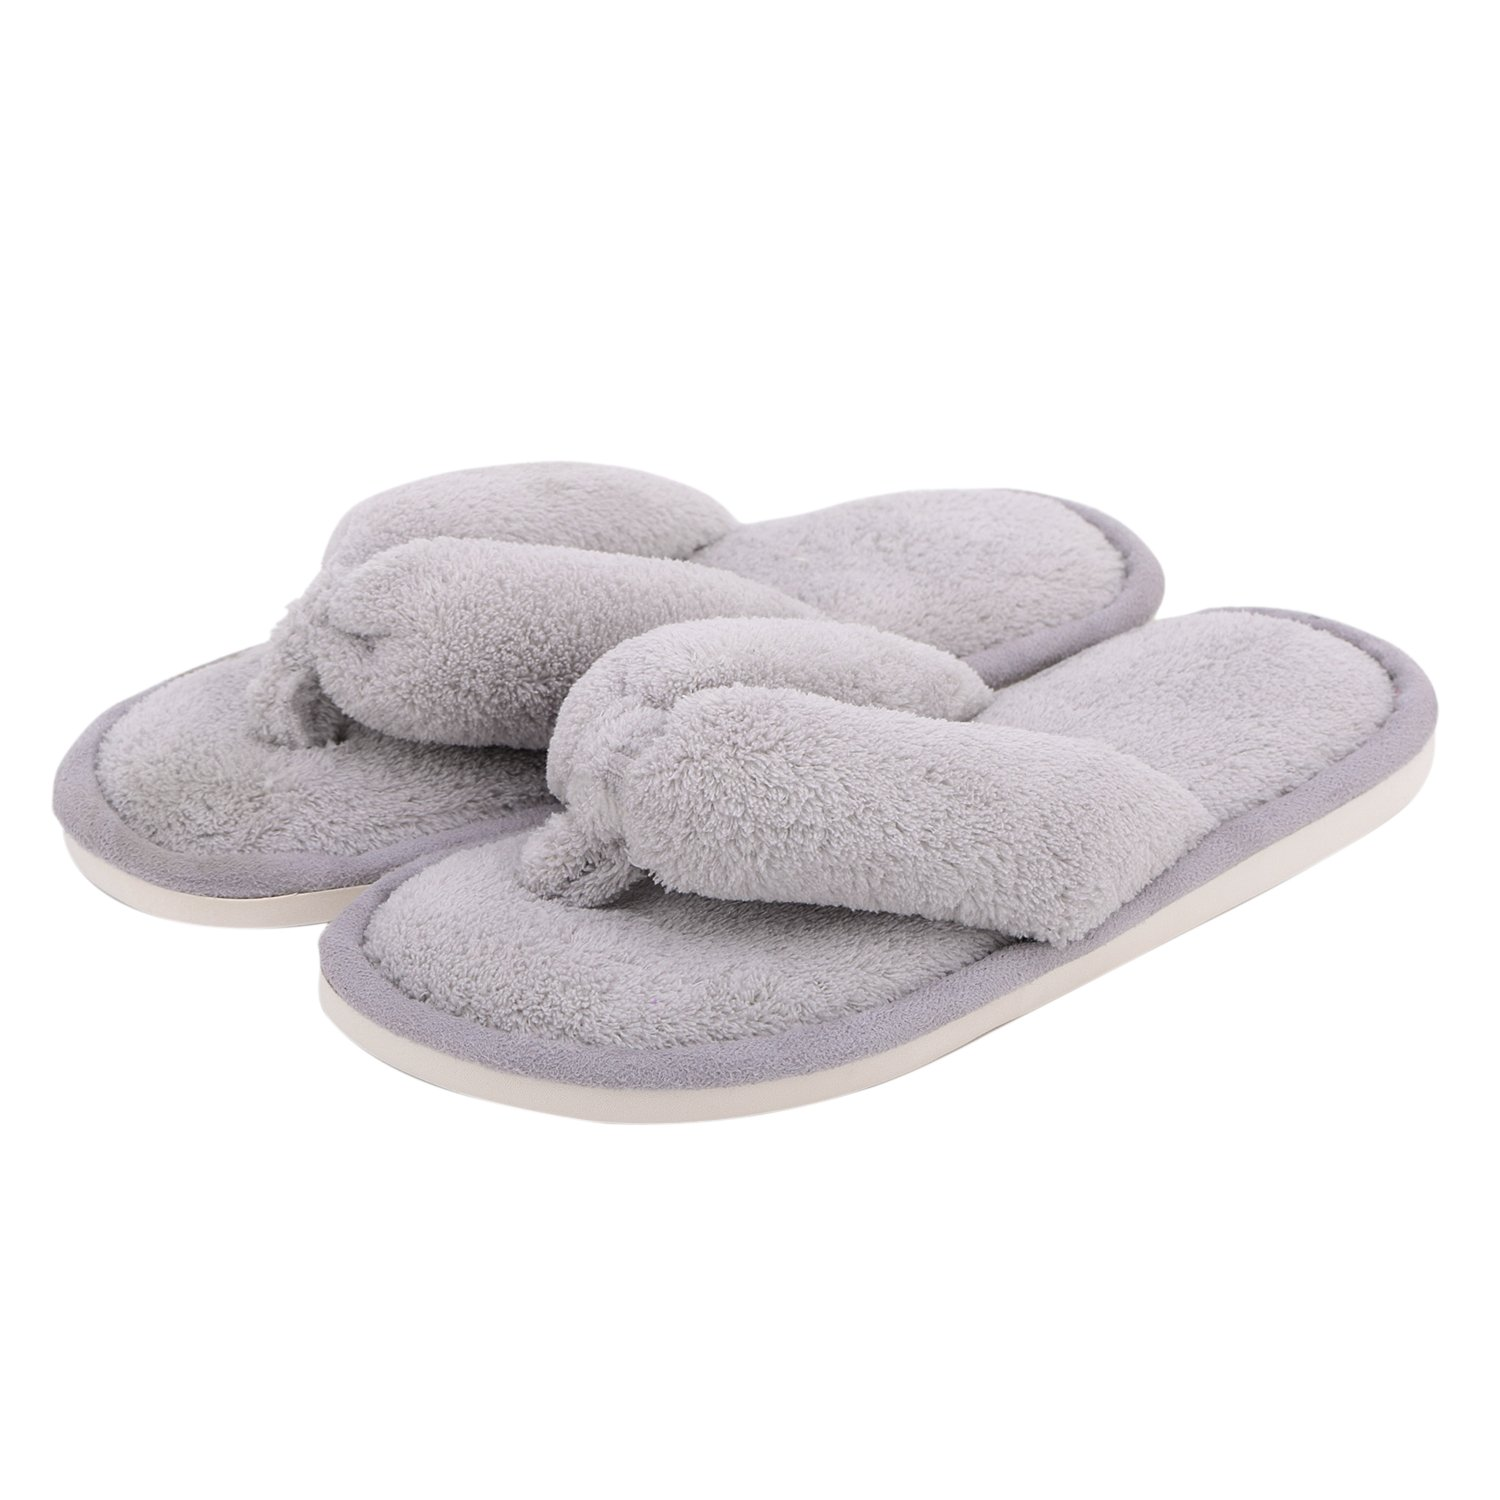 Indoor Slippers for Women Open Toe, Soft Cute Anti Slip Home Slippers (M- US Women Size 7-8, Grey)